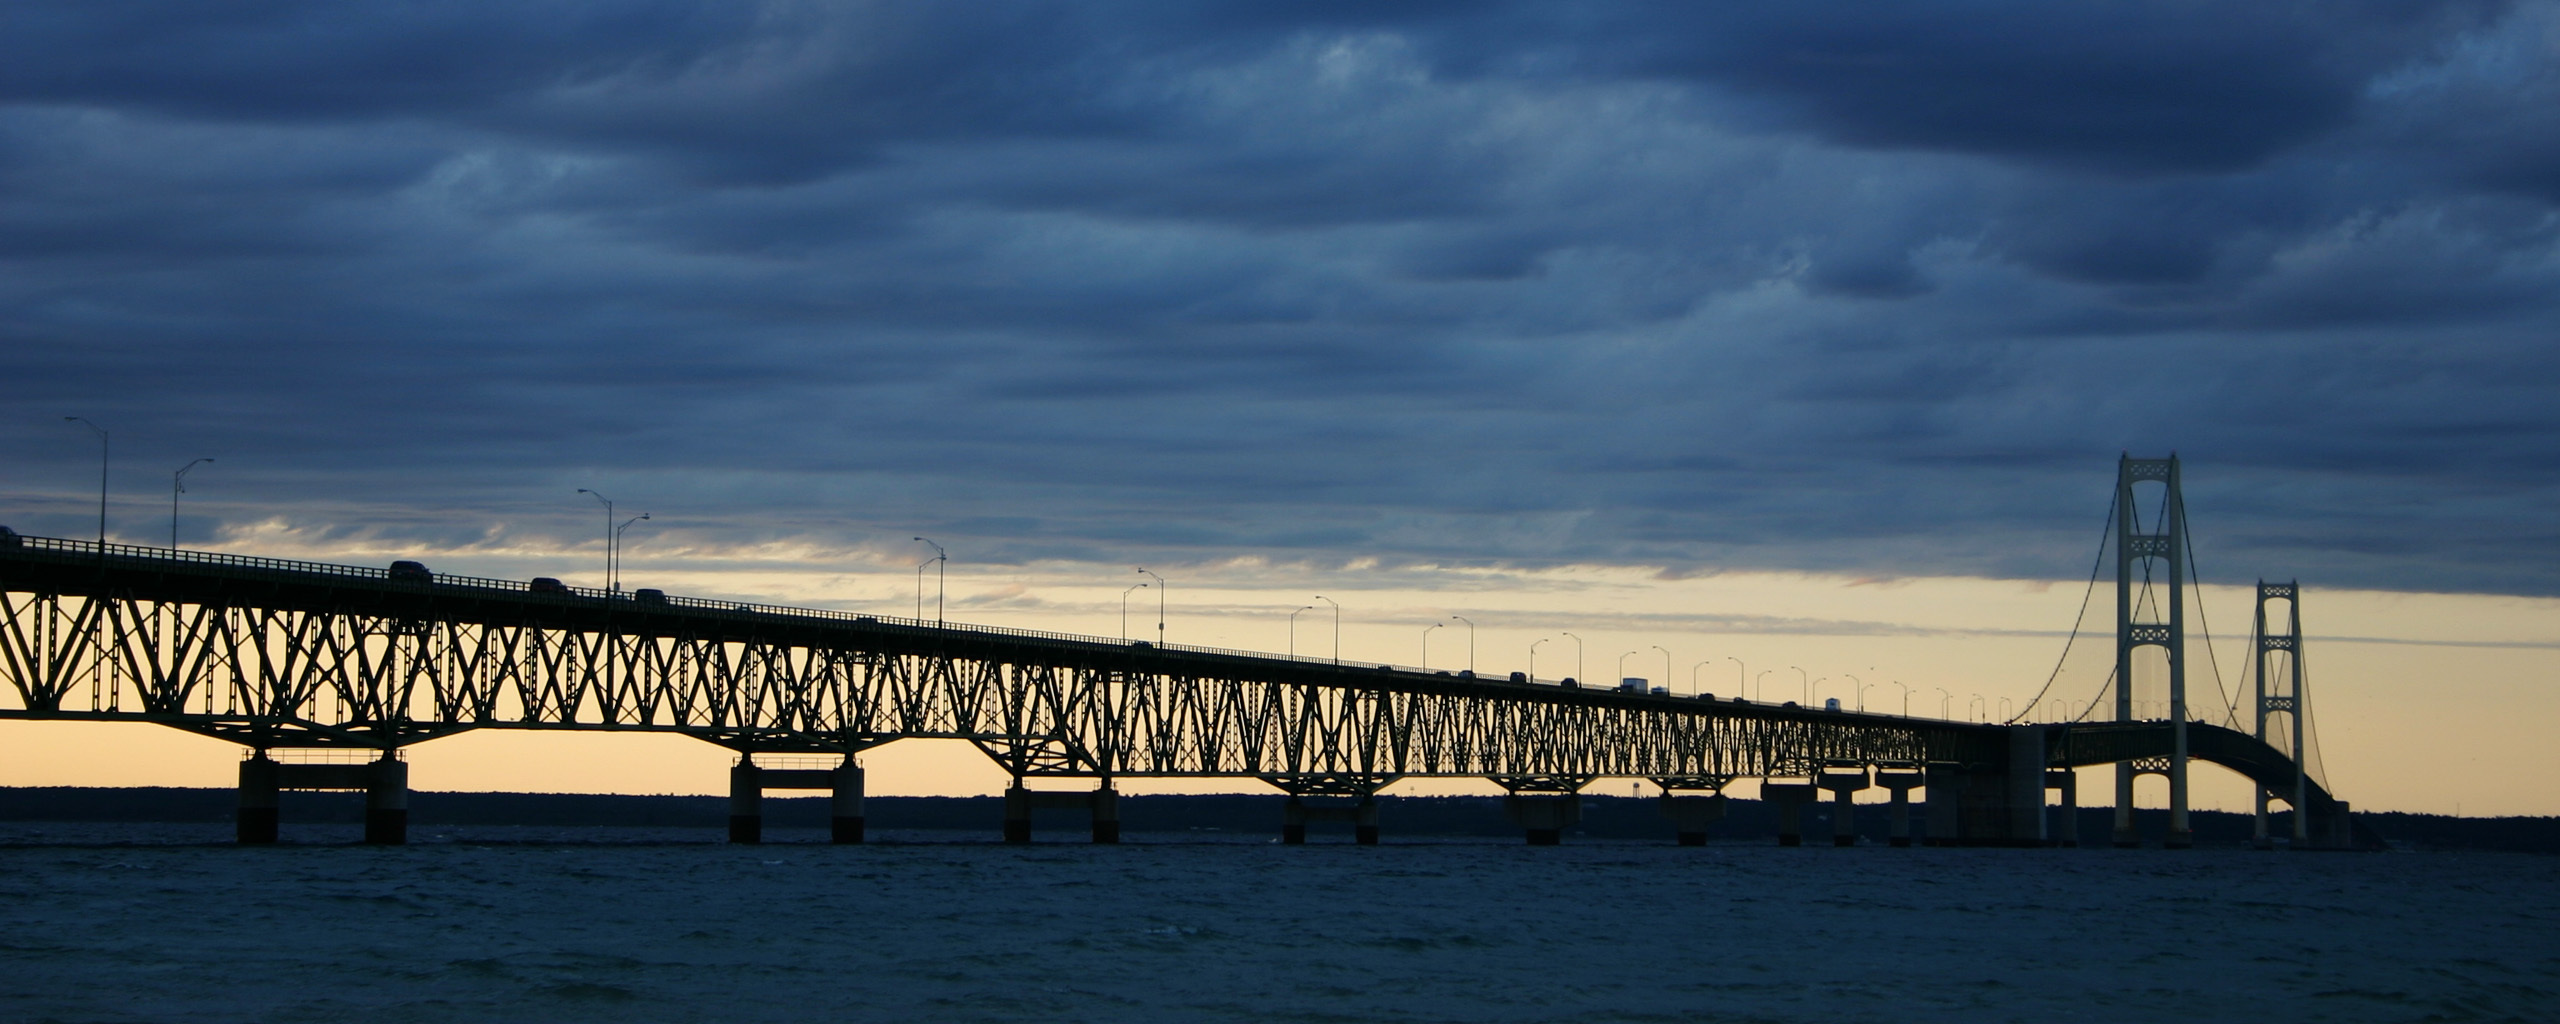 mackinac Bridge for contest HD Wallpaper